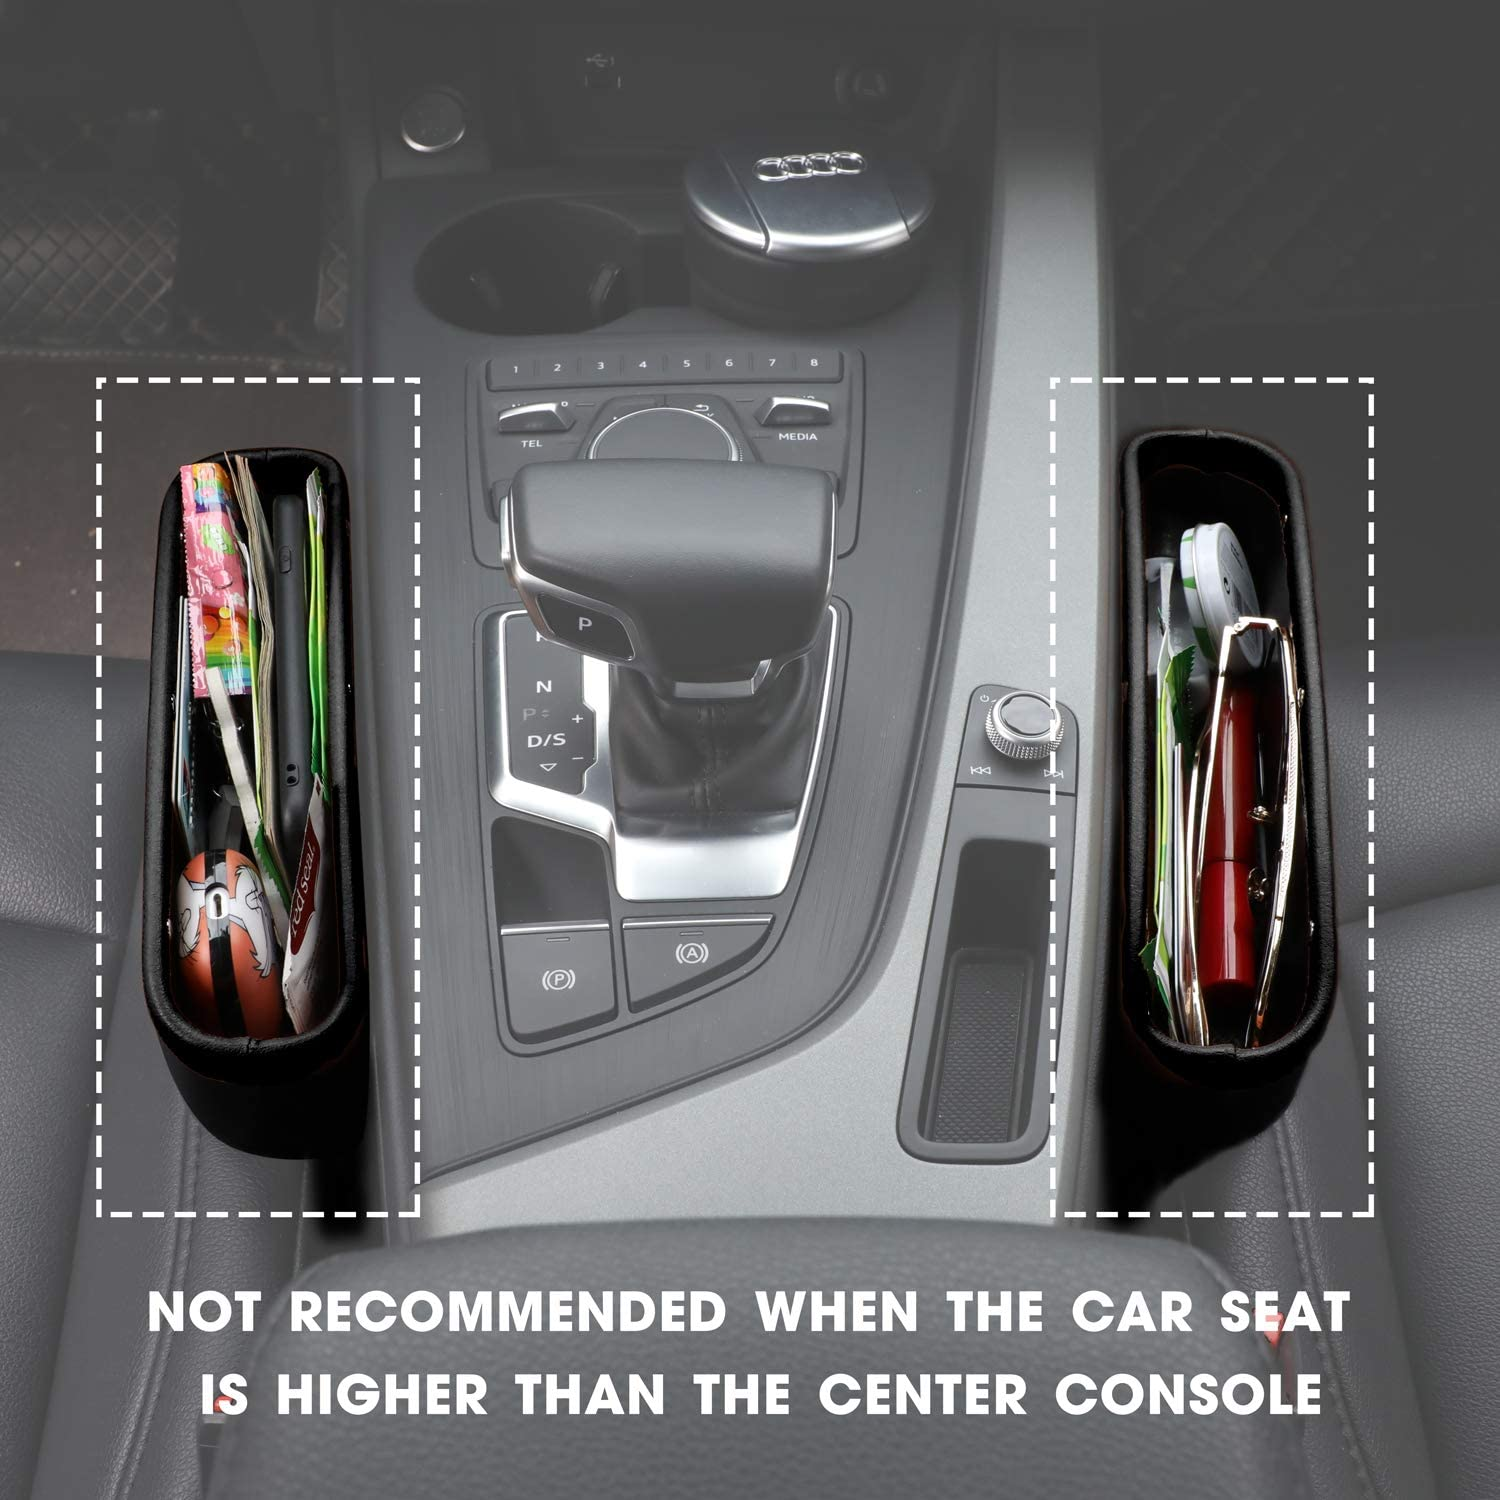 Car Seat Pockets PU Leather Car Console Side Organizer Seat Gap Filler Catch Caddy with Non-Slip Mat 9.2x6.5x2.1 inch Black(2 Pack) Powertiger: Automotive